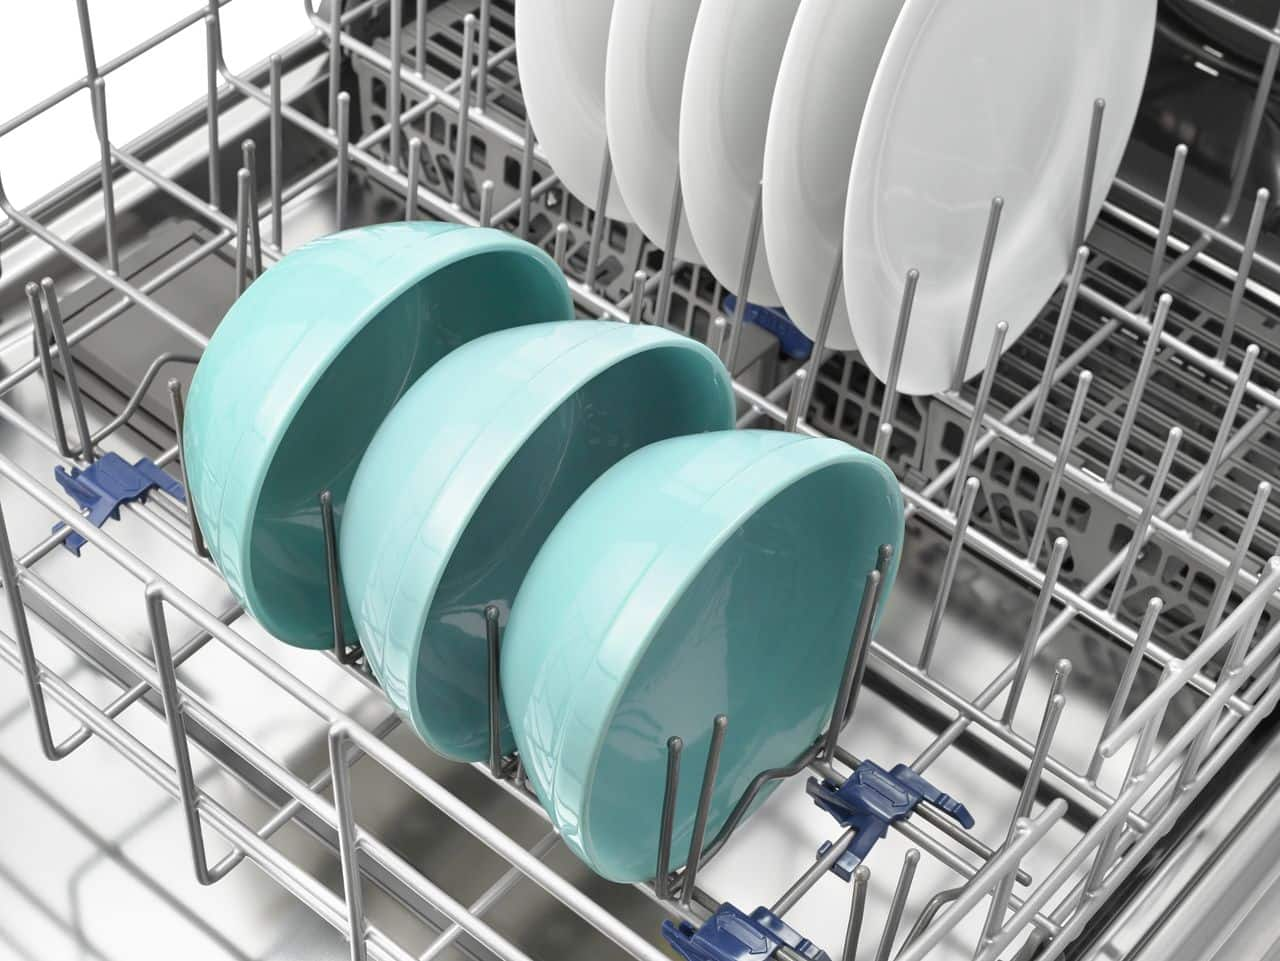 Review: Whirlpool Gold Dishwasher with TotalCoverage Spray Arm ...